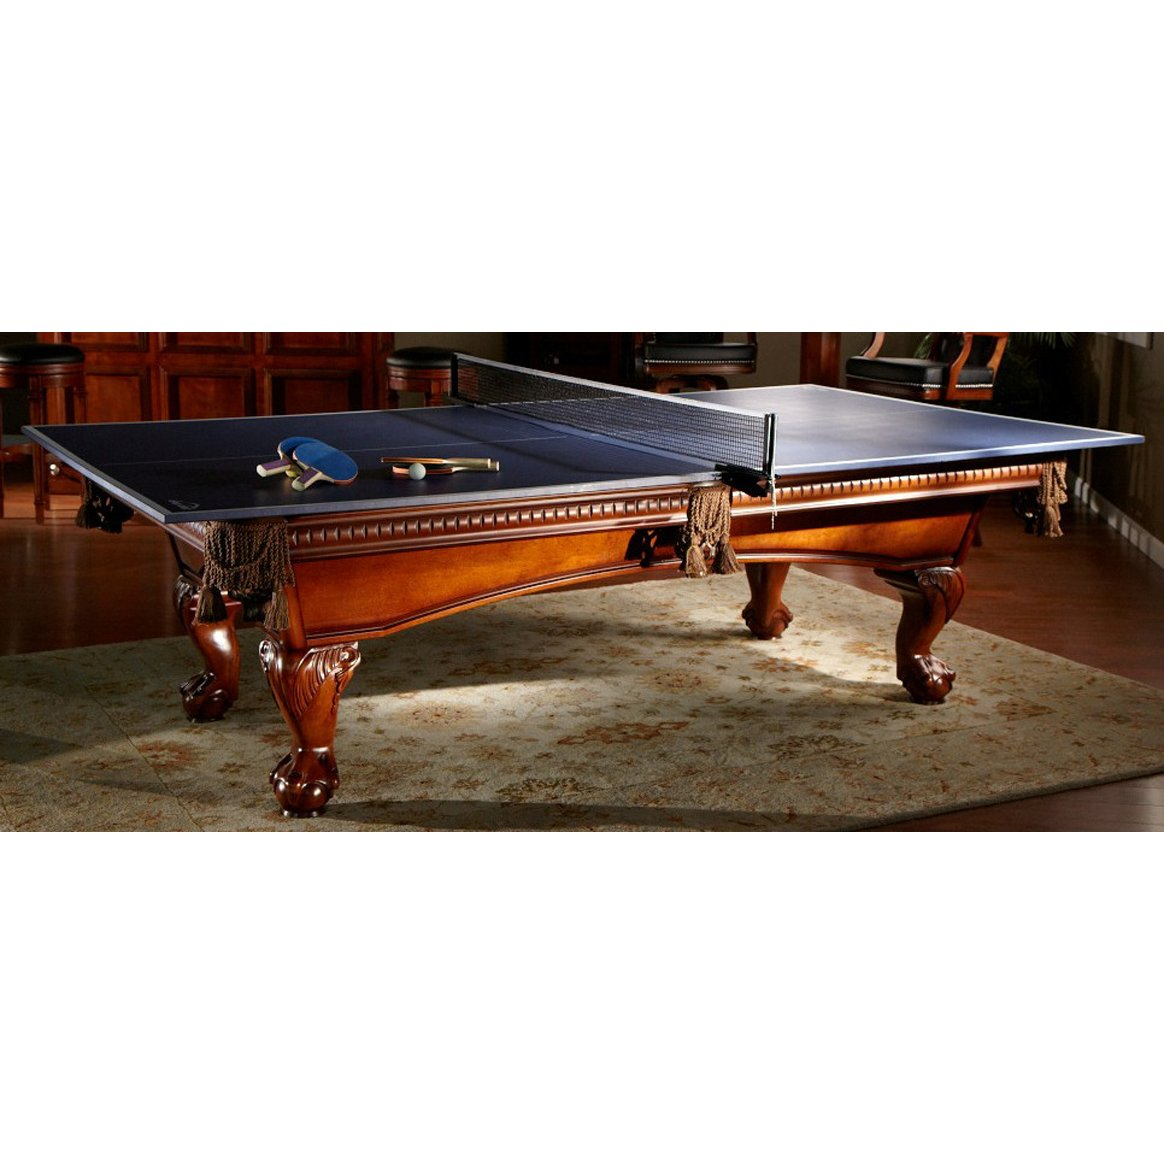 ping pong conversion kit rc willey furniture store. Black Bedroom Furniture Sets. Home Design Ideas